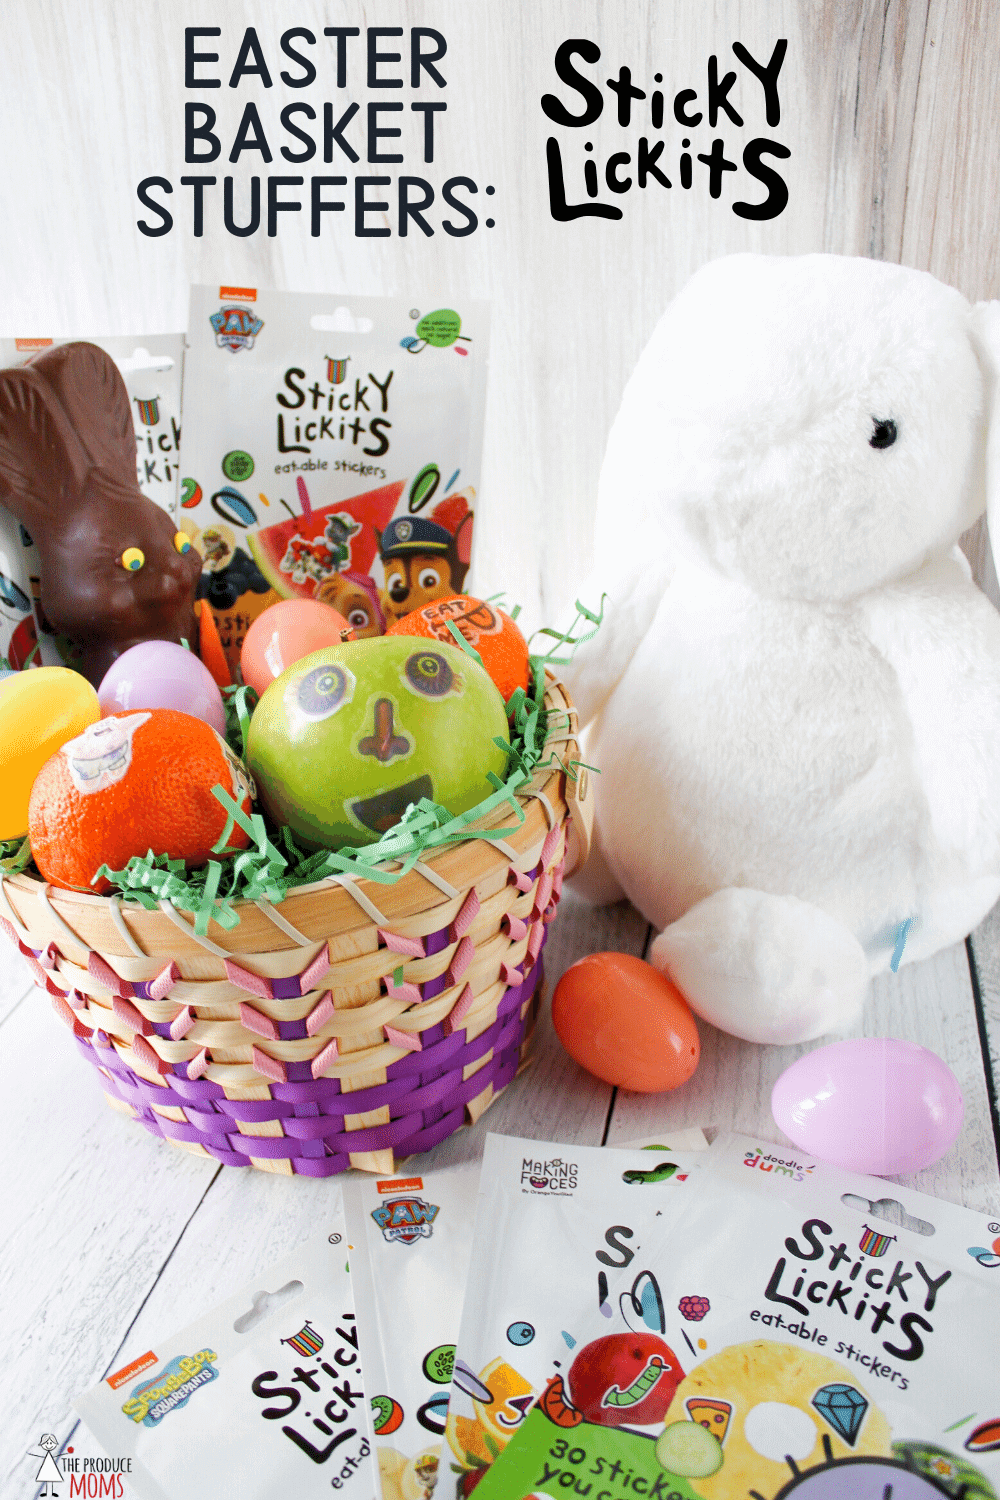 Easter Basket Stuffers: StickyLickits